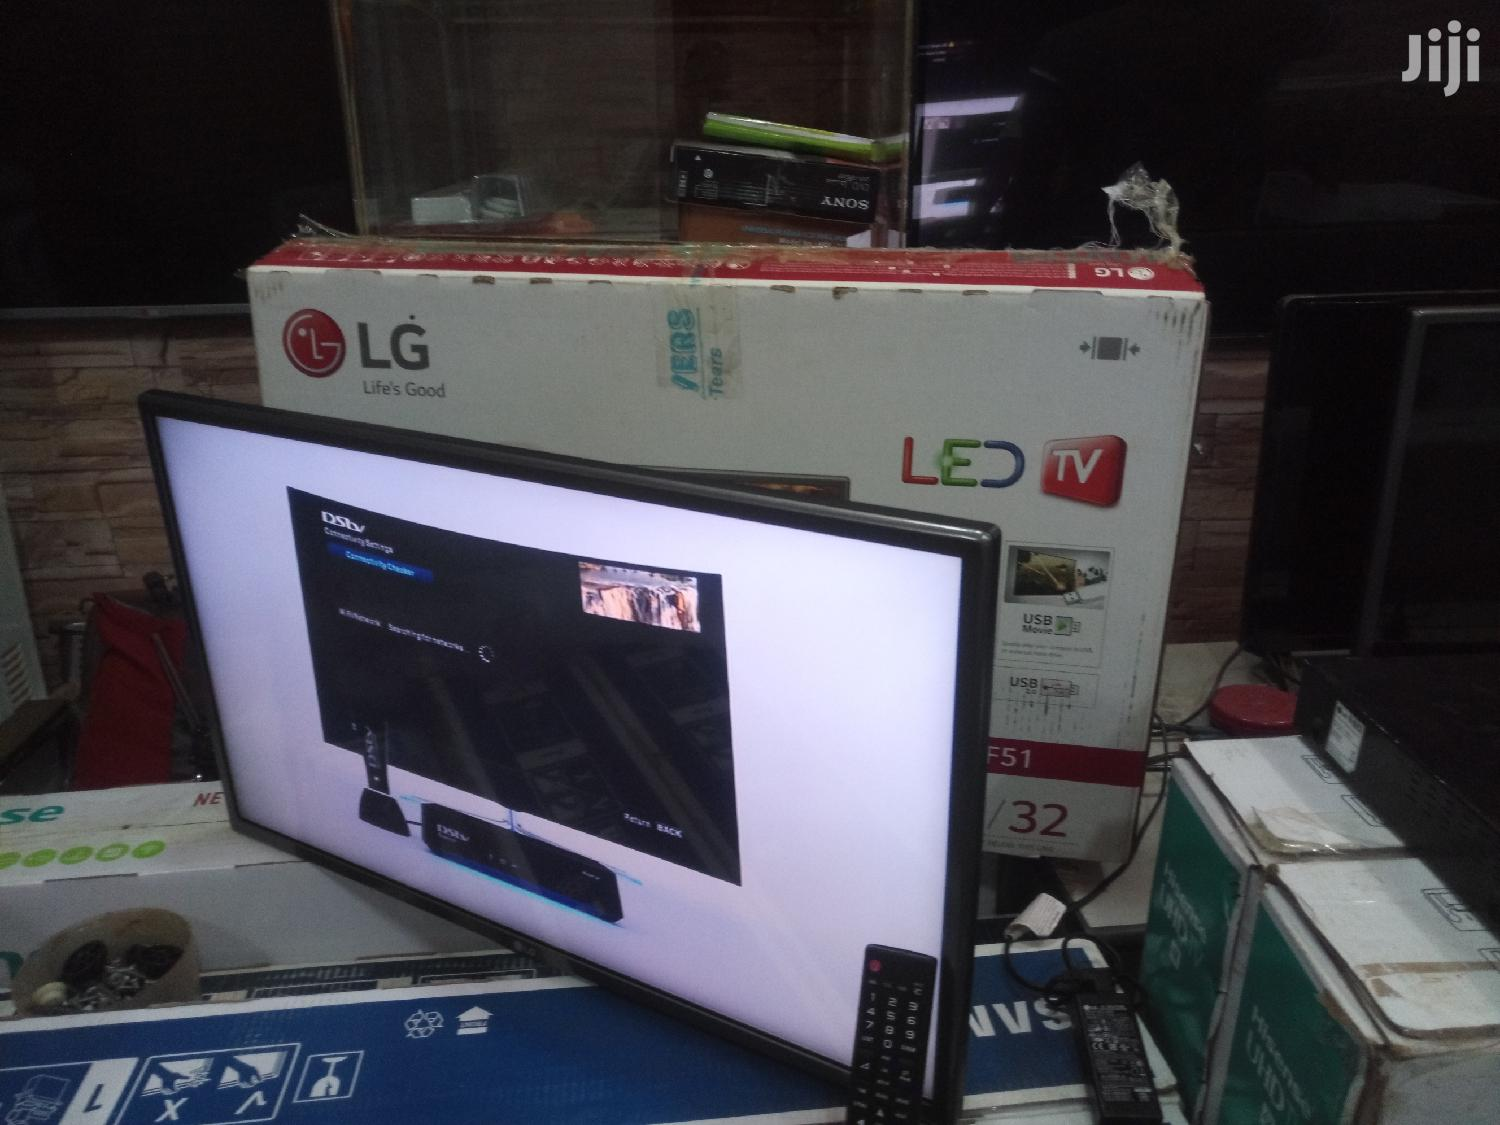 LG Flat Screen TV 32 inches